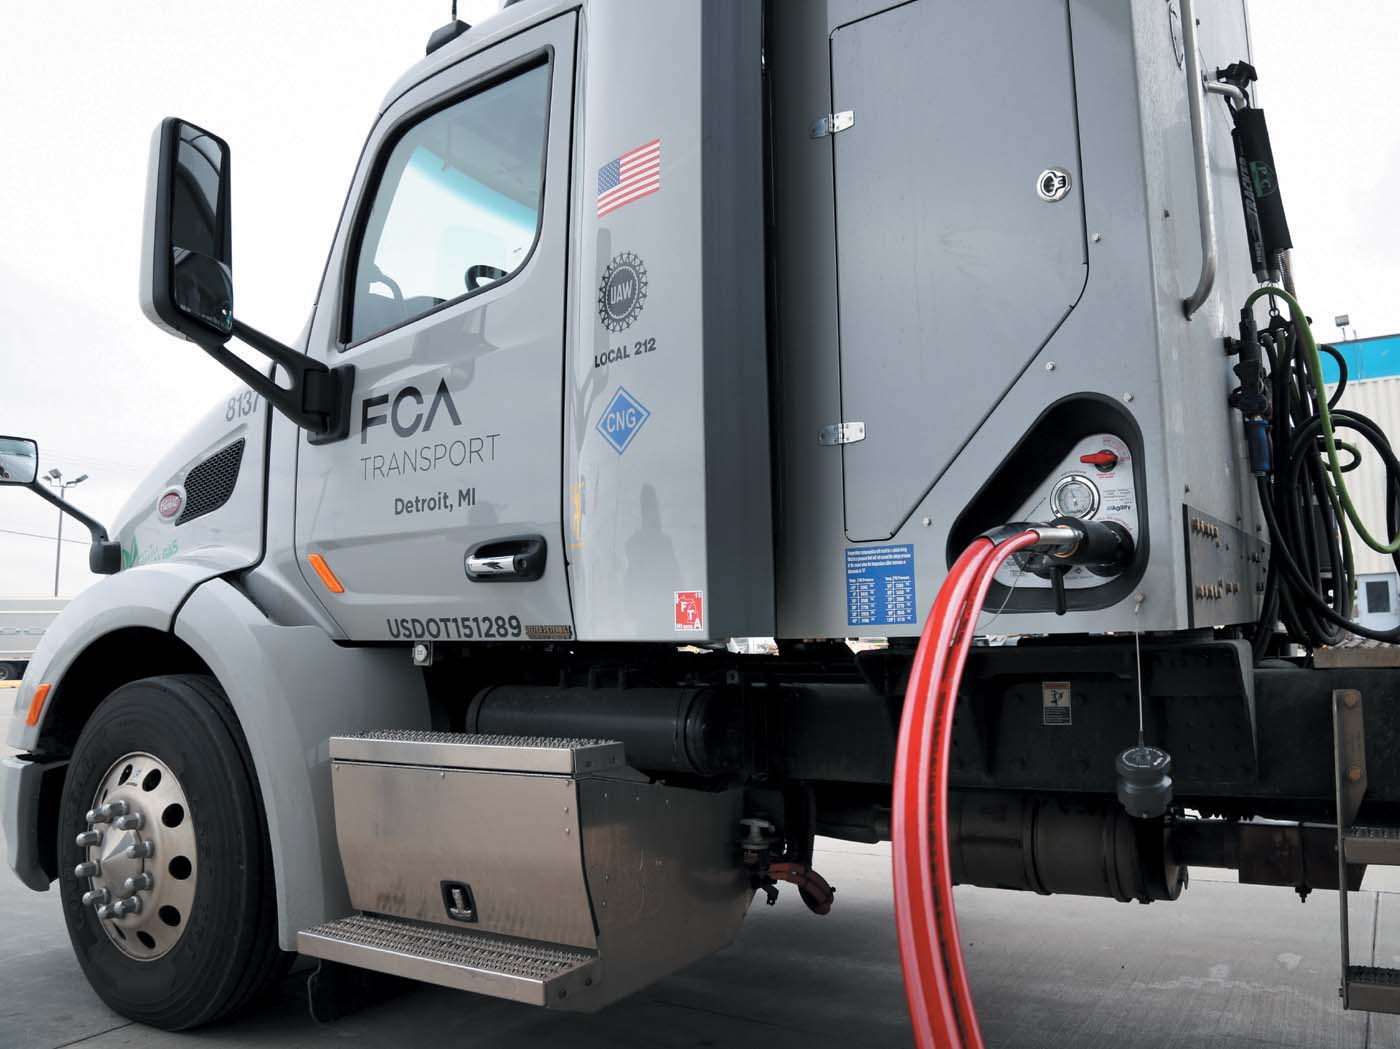 FCA_CNG truck